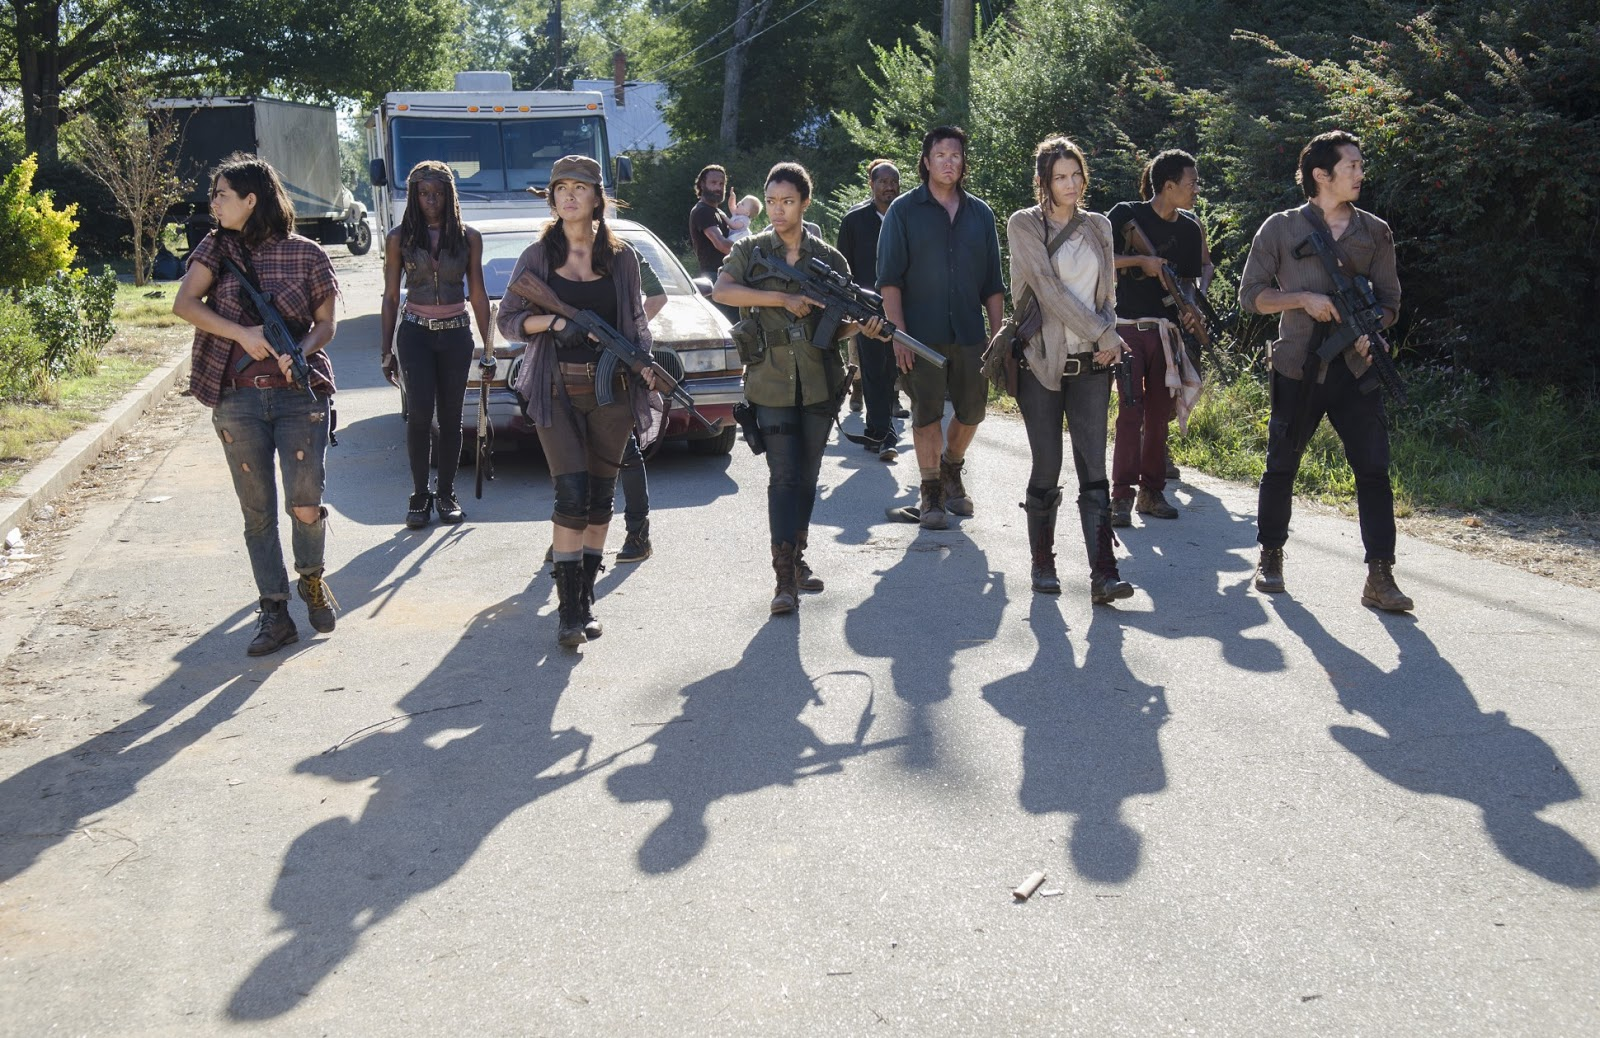 Image from the walking dead